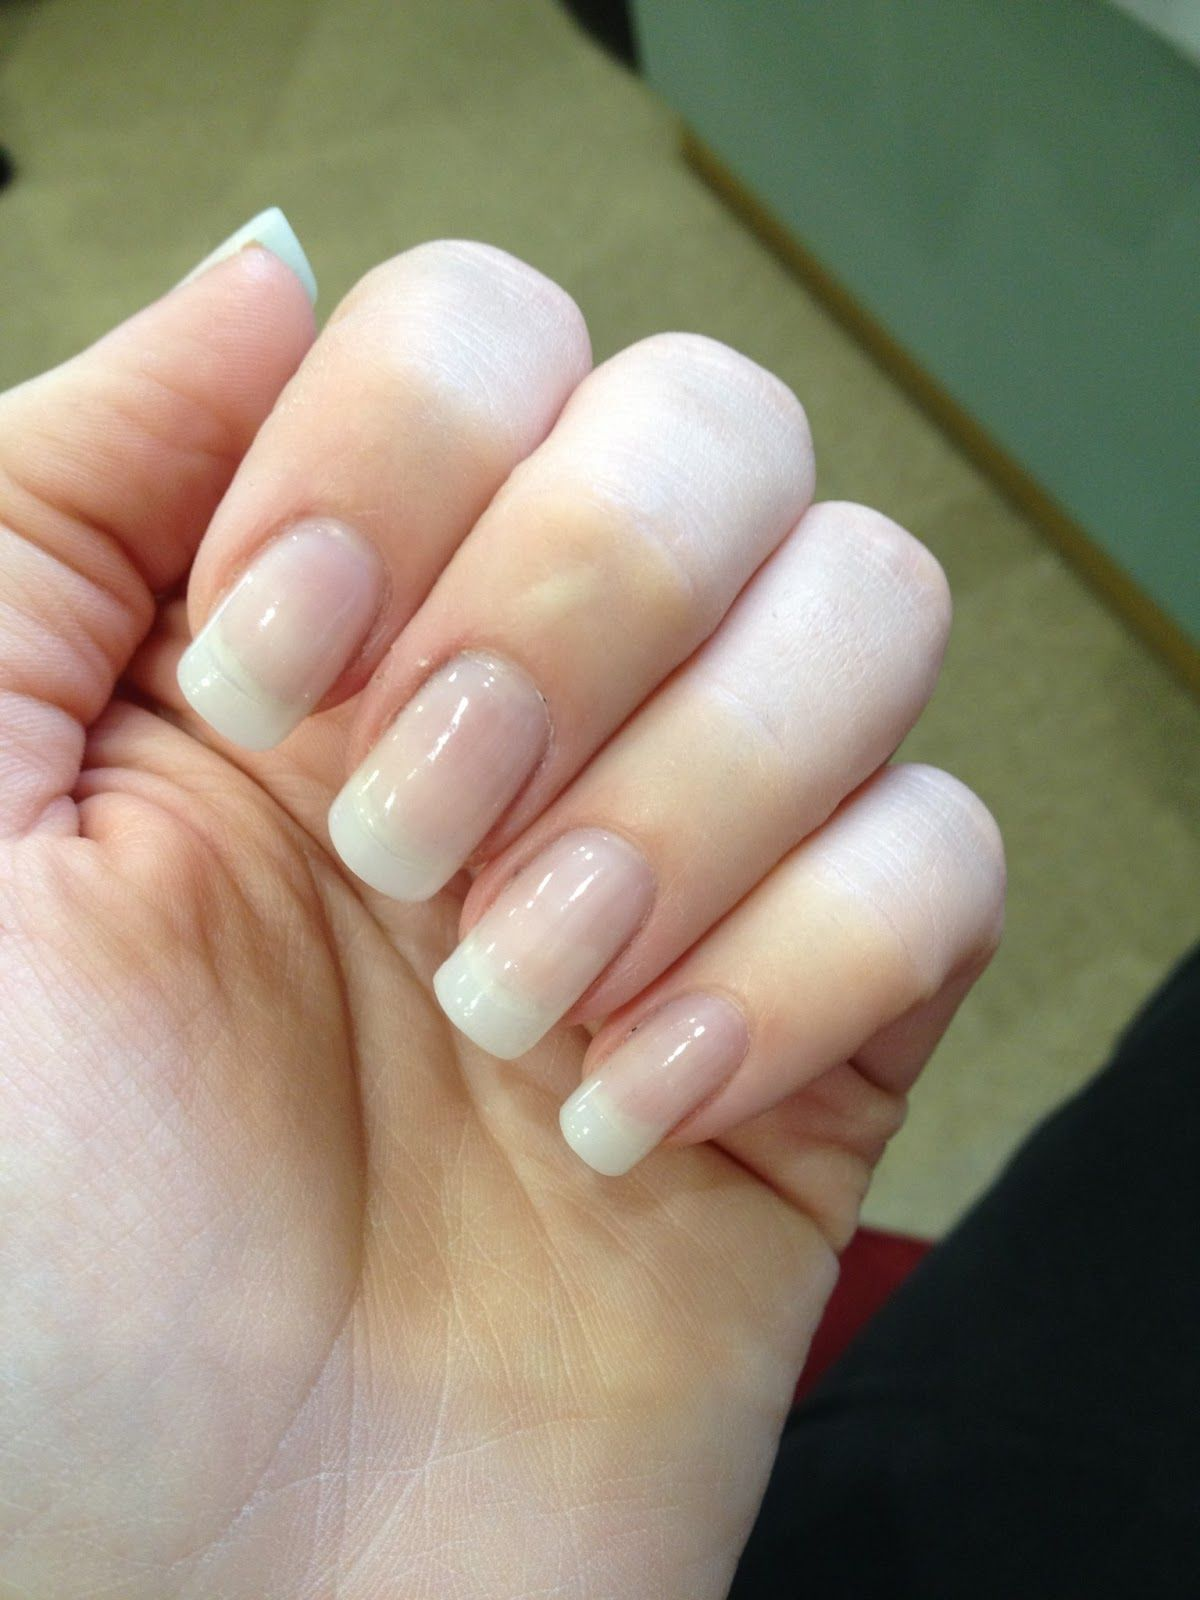 gel extensions - Google Search | Nails | Pinterest | Extension ...